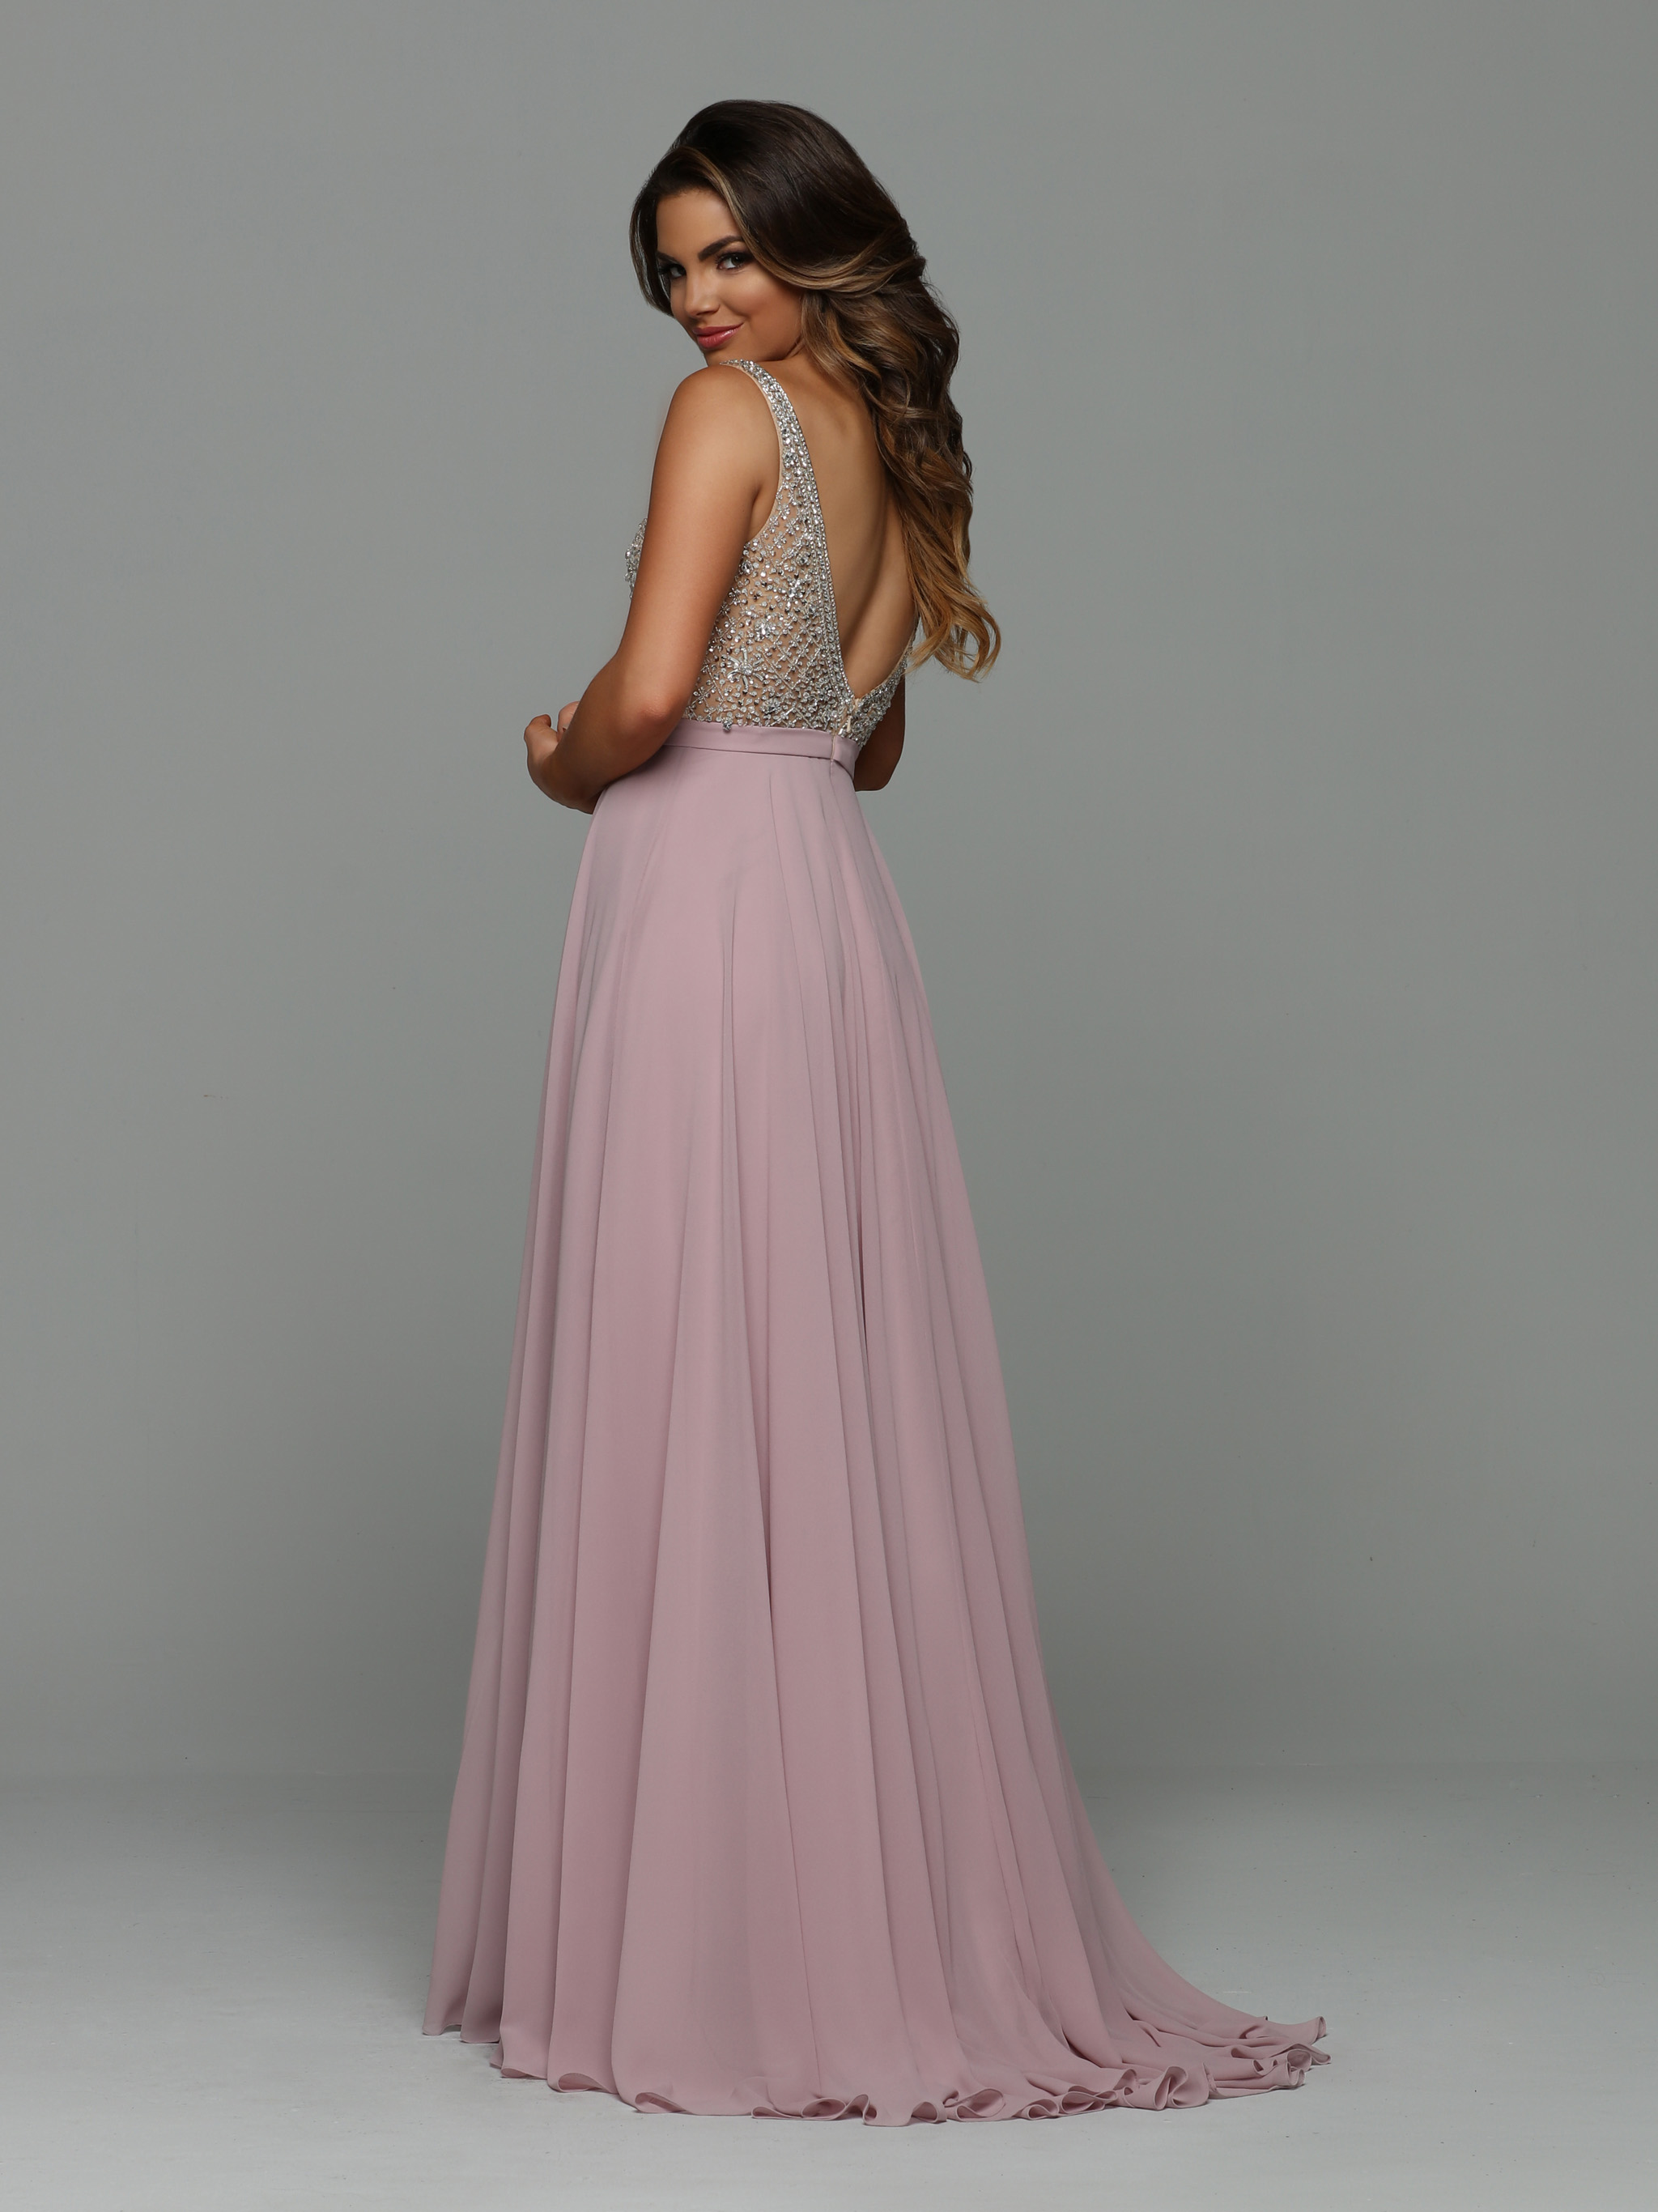 Image showing back view of style #71931